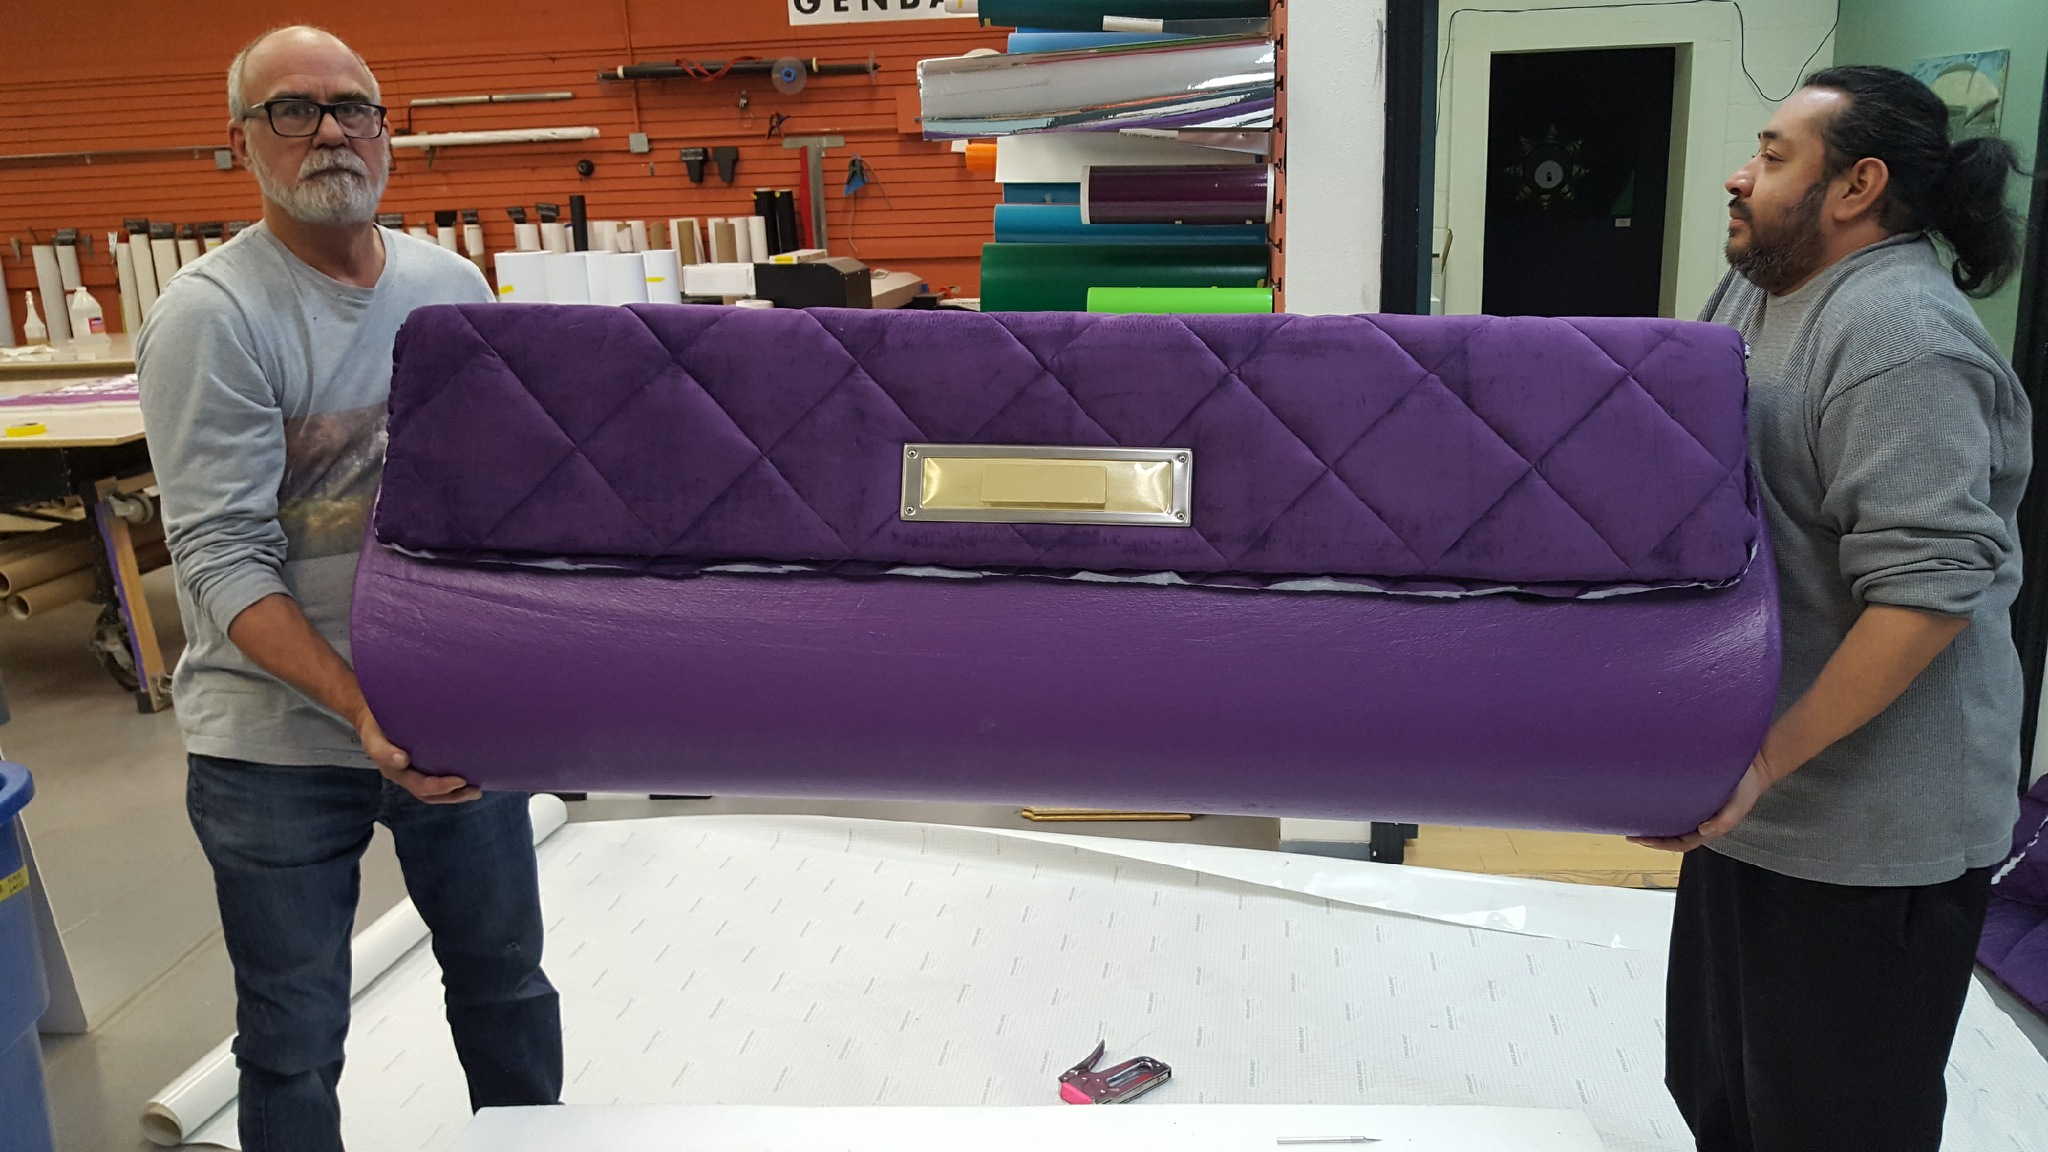 Quilted back for Chanel seat – client wanted a seat to look like a Chanel purse.